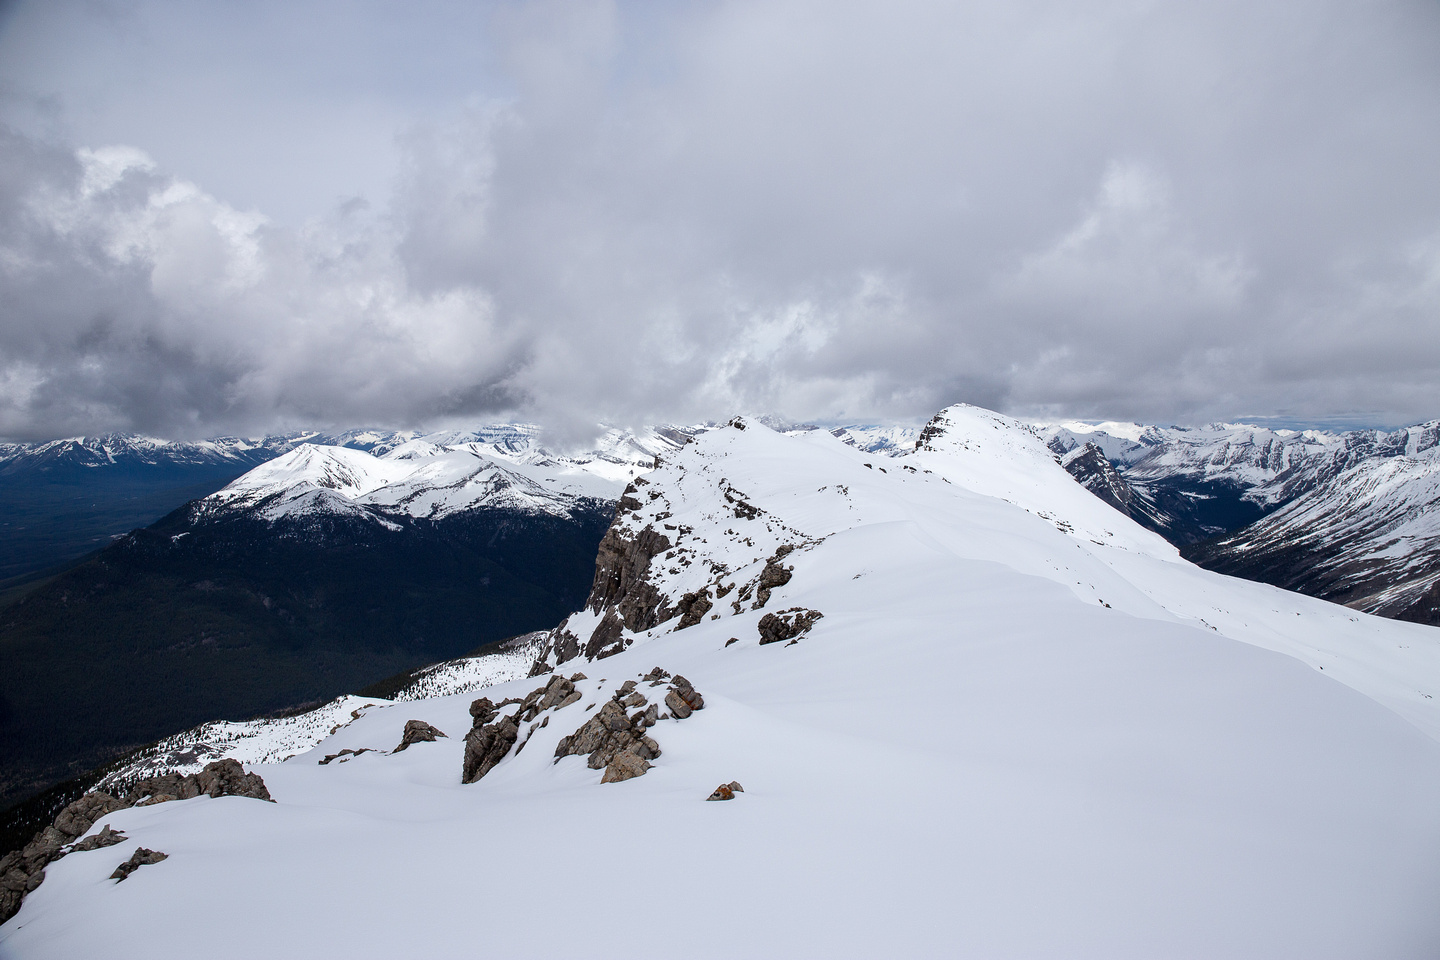 Armor Peak may look close, but it's further than you think!